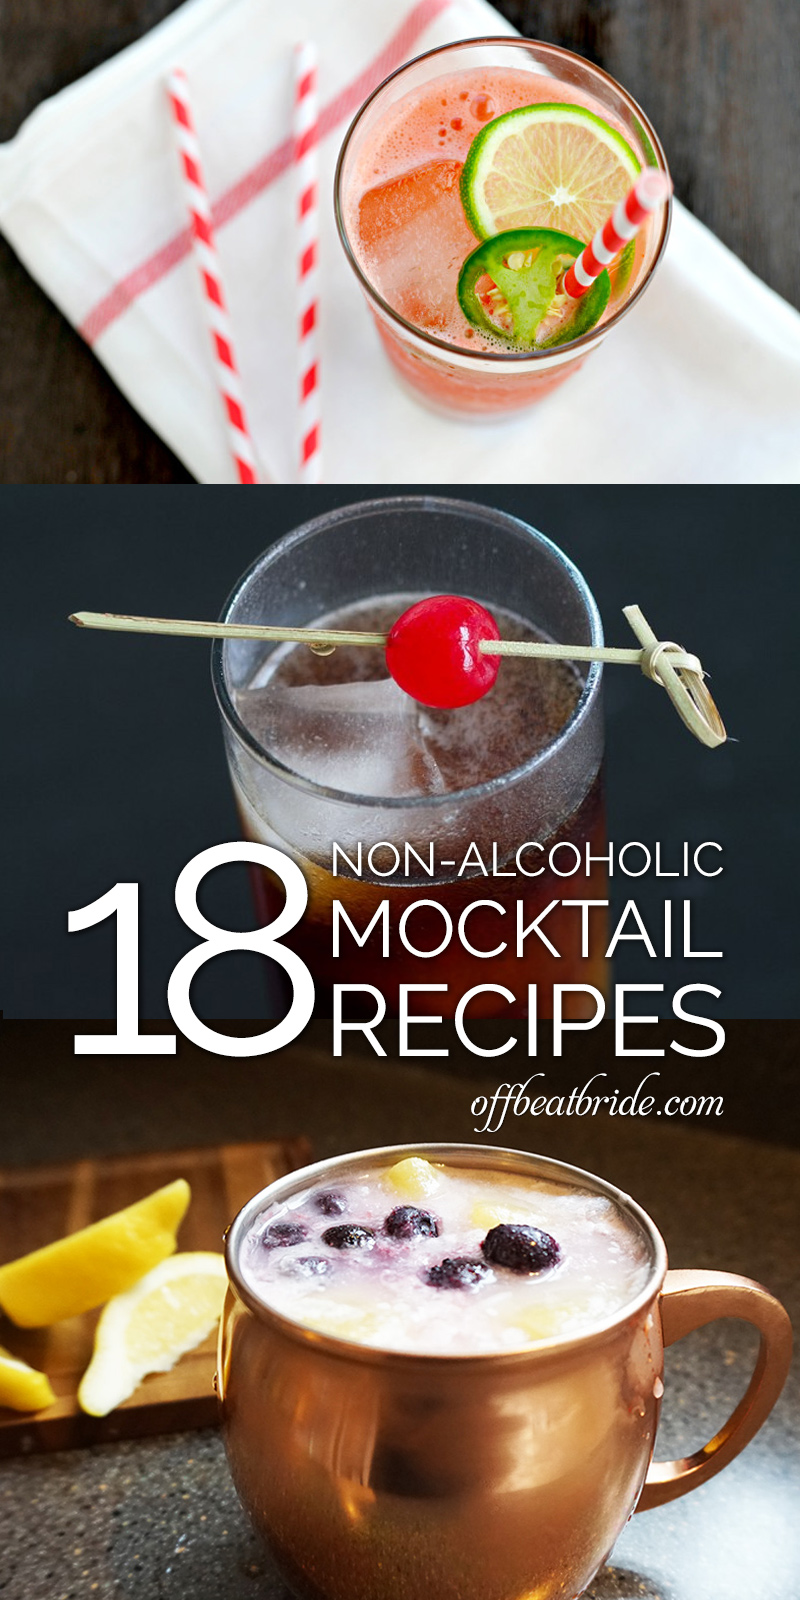 Mocktail recipes for weddings